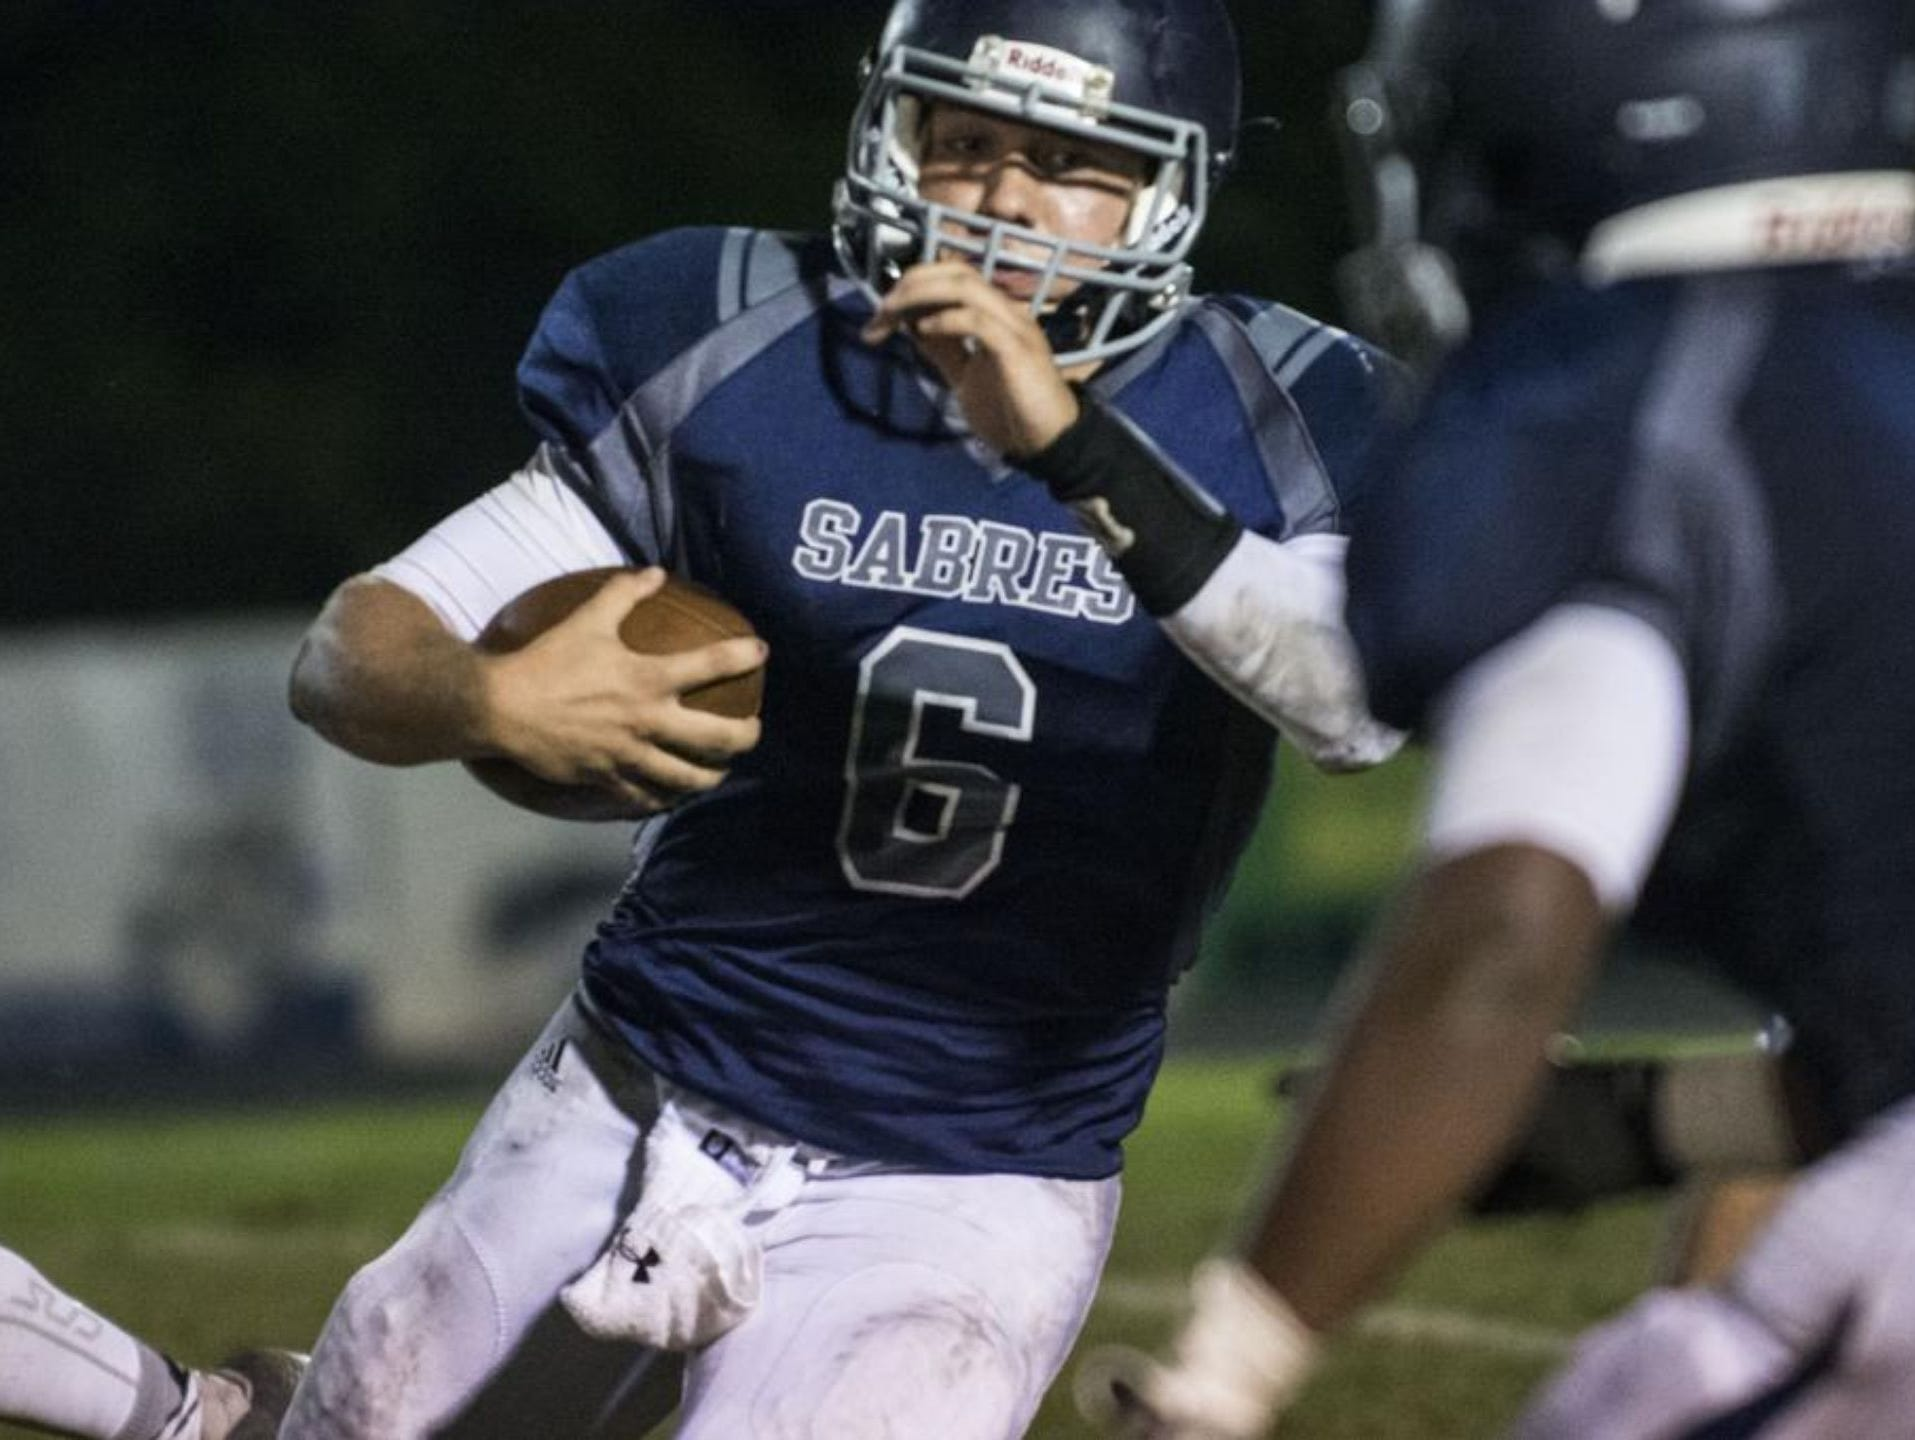 Quarterback Clayton Coulter (6) and the Southside Christian School Sabres are at No. 6 in Class A in this week's S.C. Prep Football Media Poll.